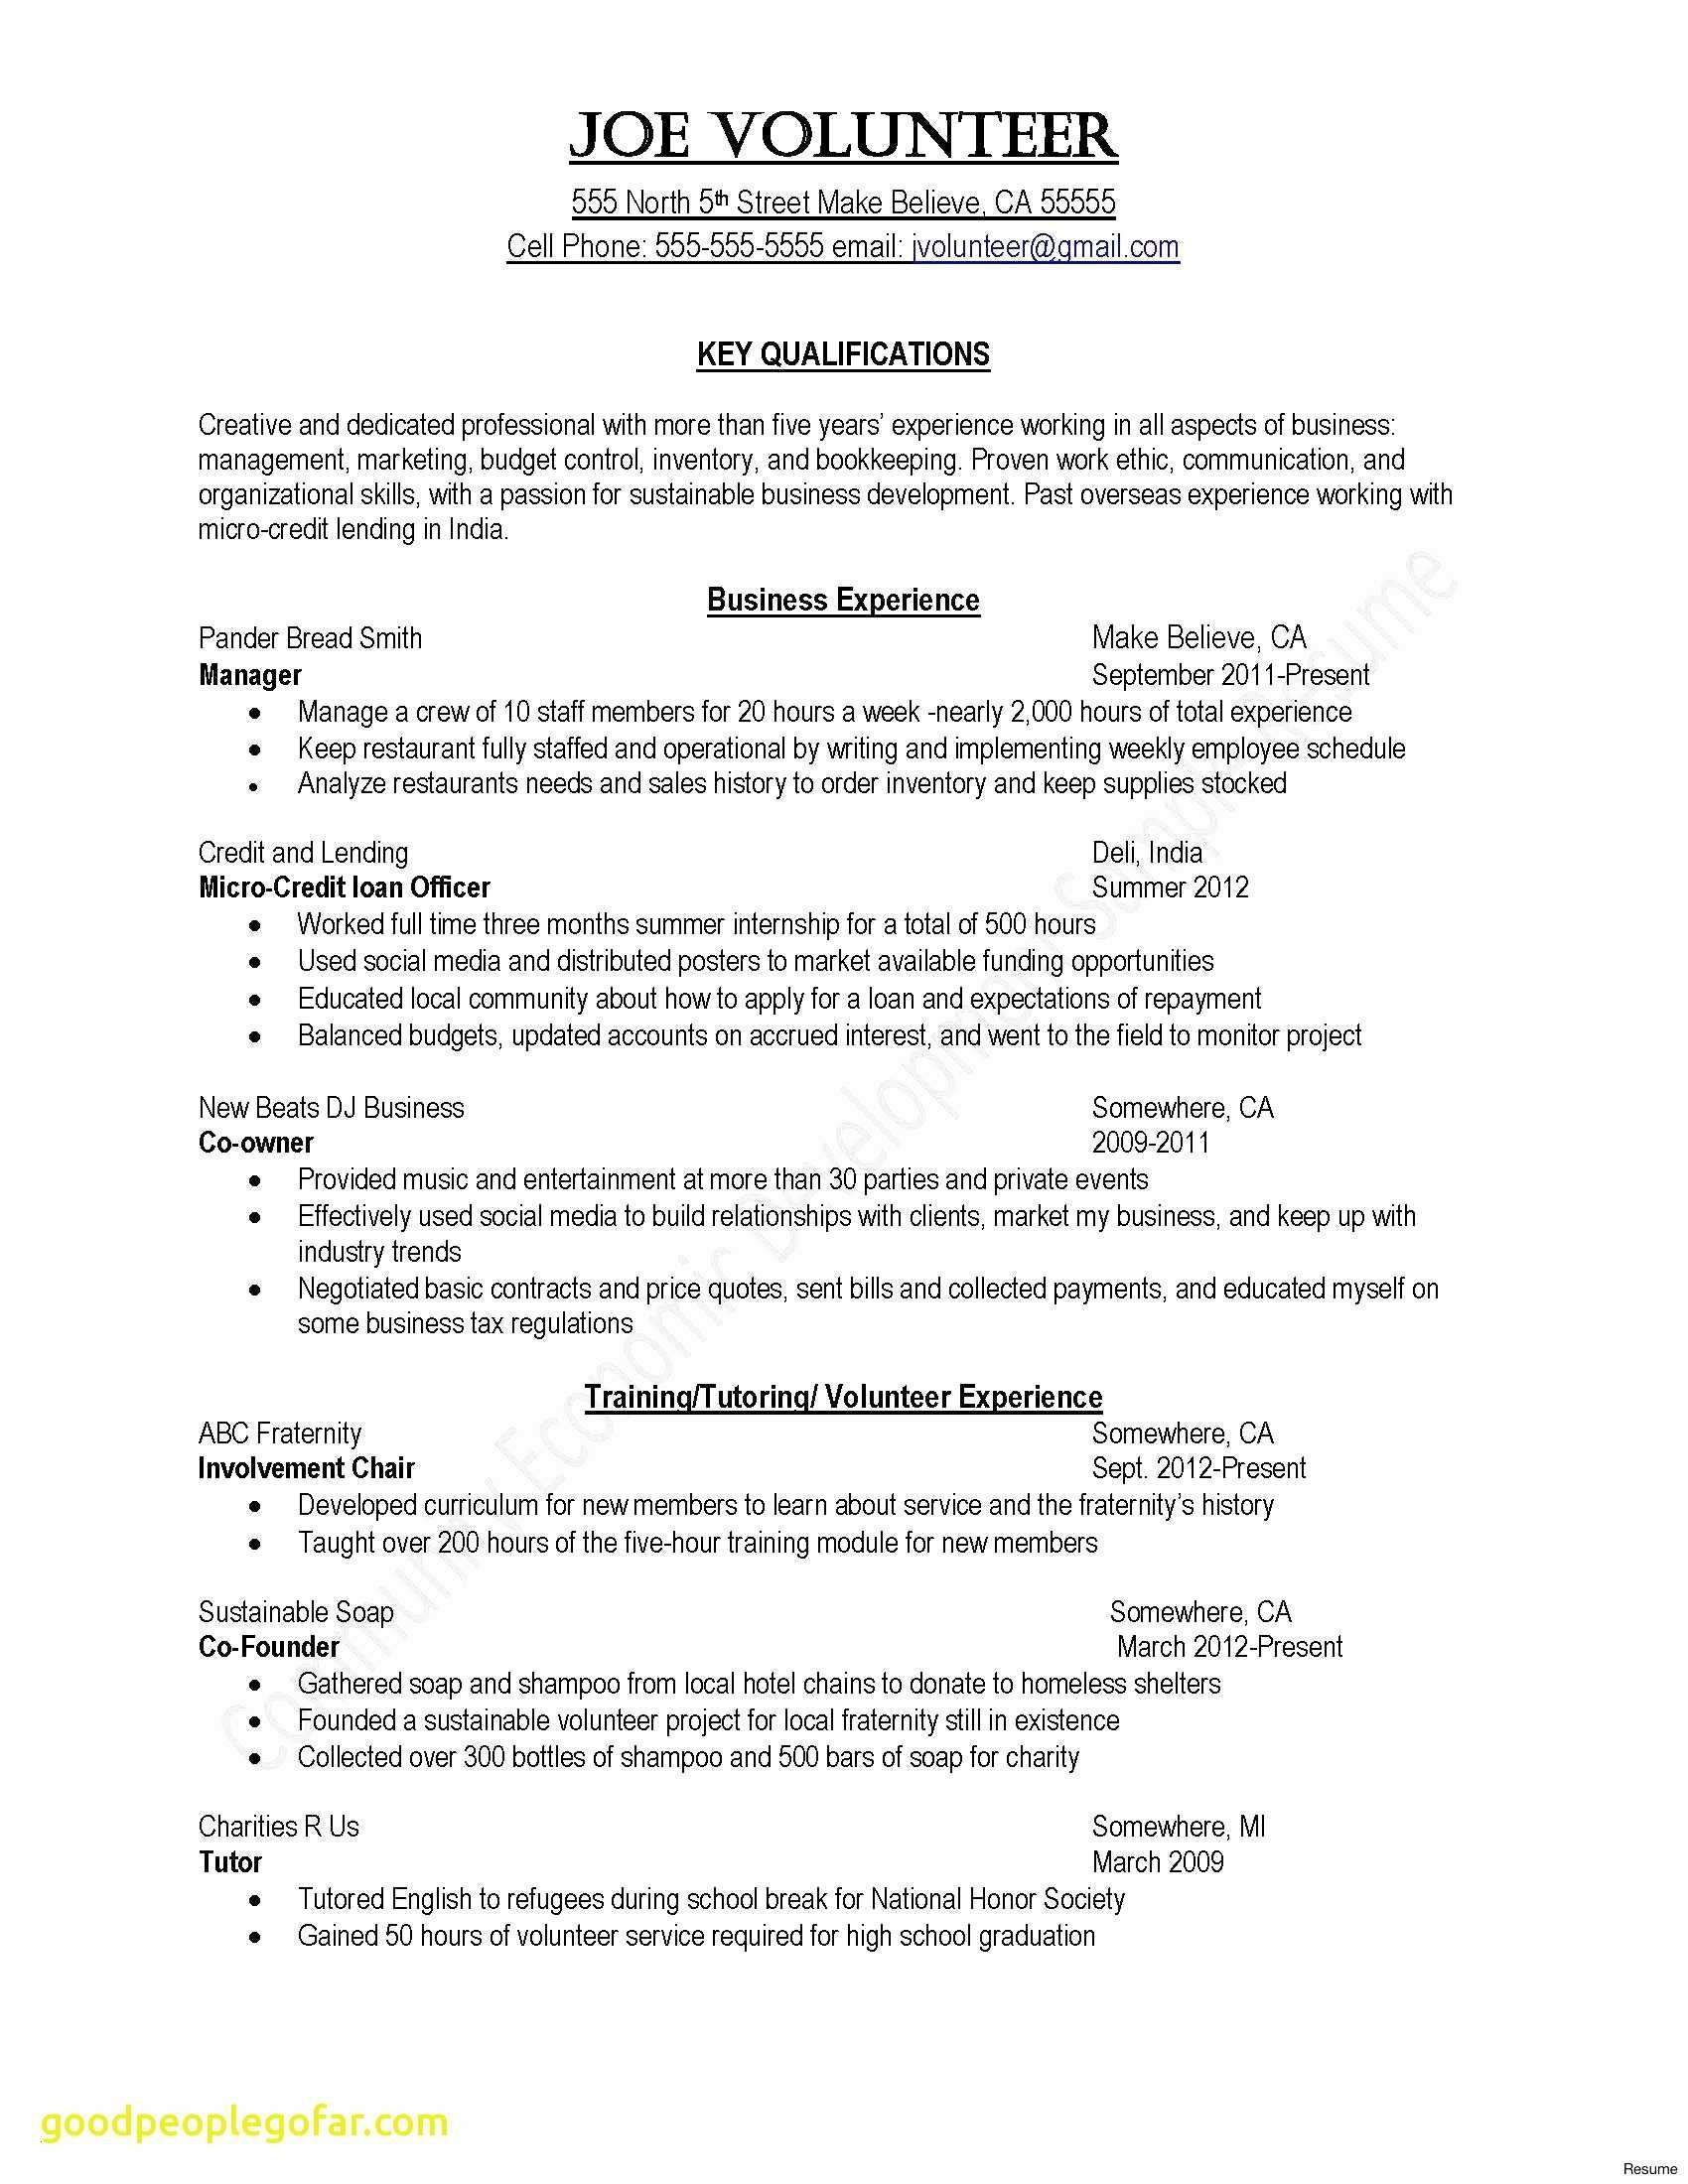 Community Service Resume - Hand Written Resumes are Still Used Frequently